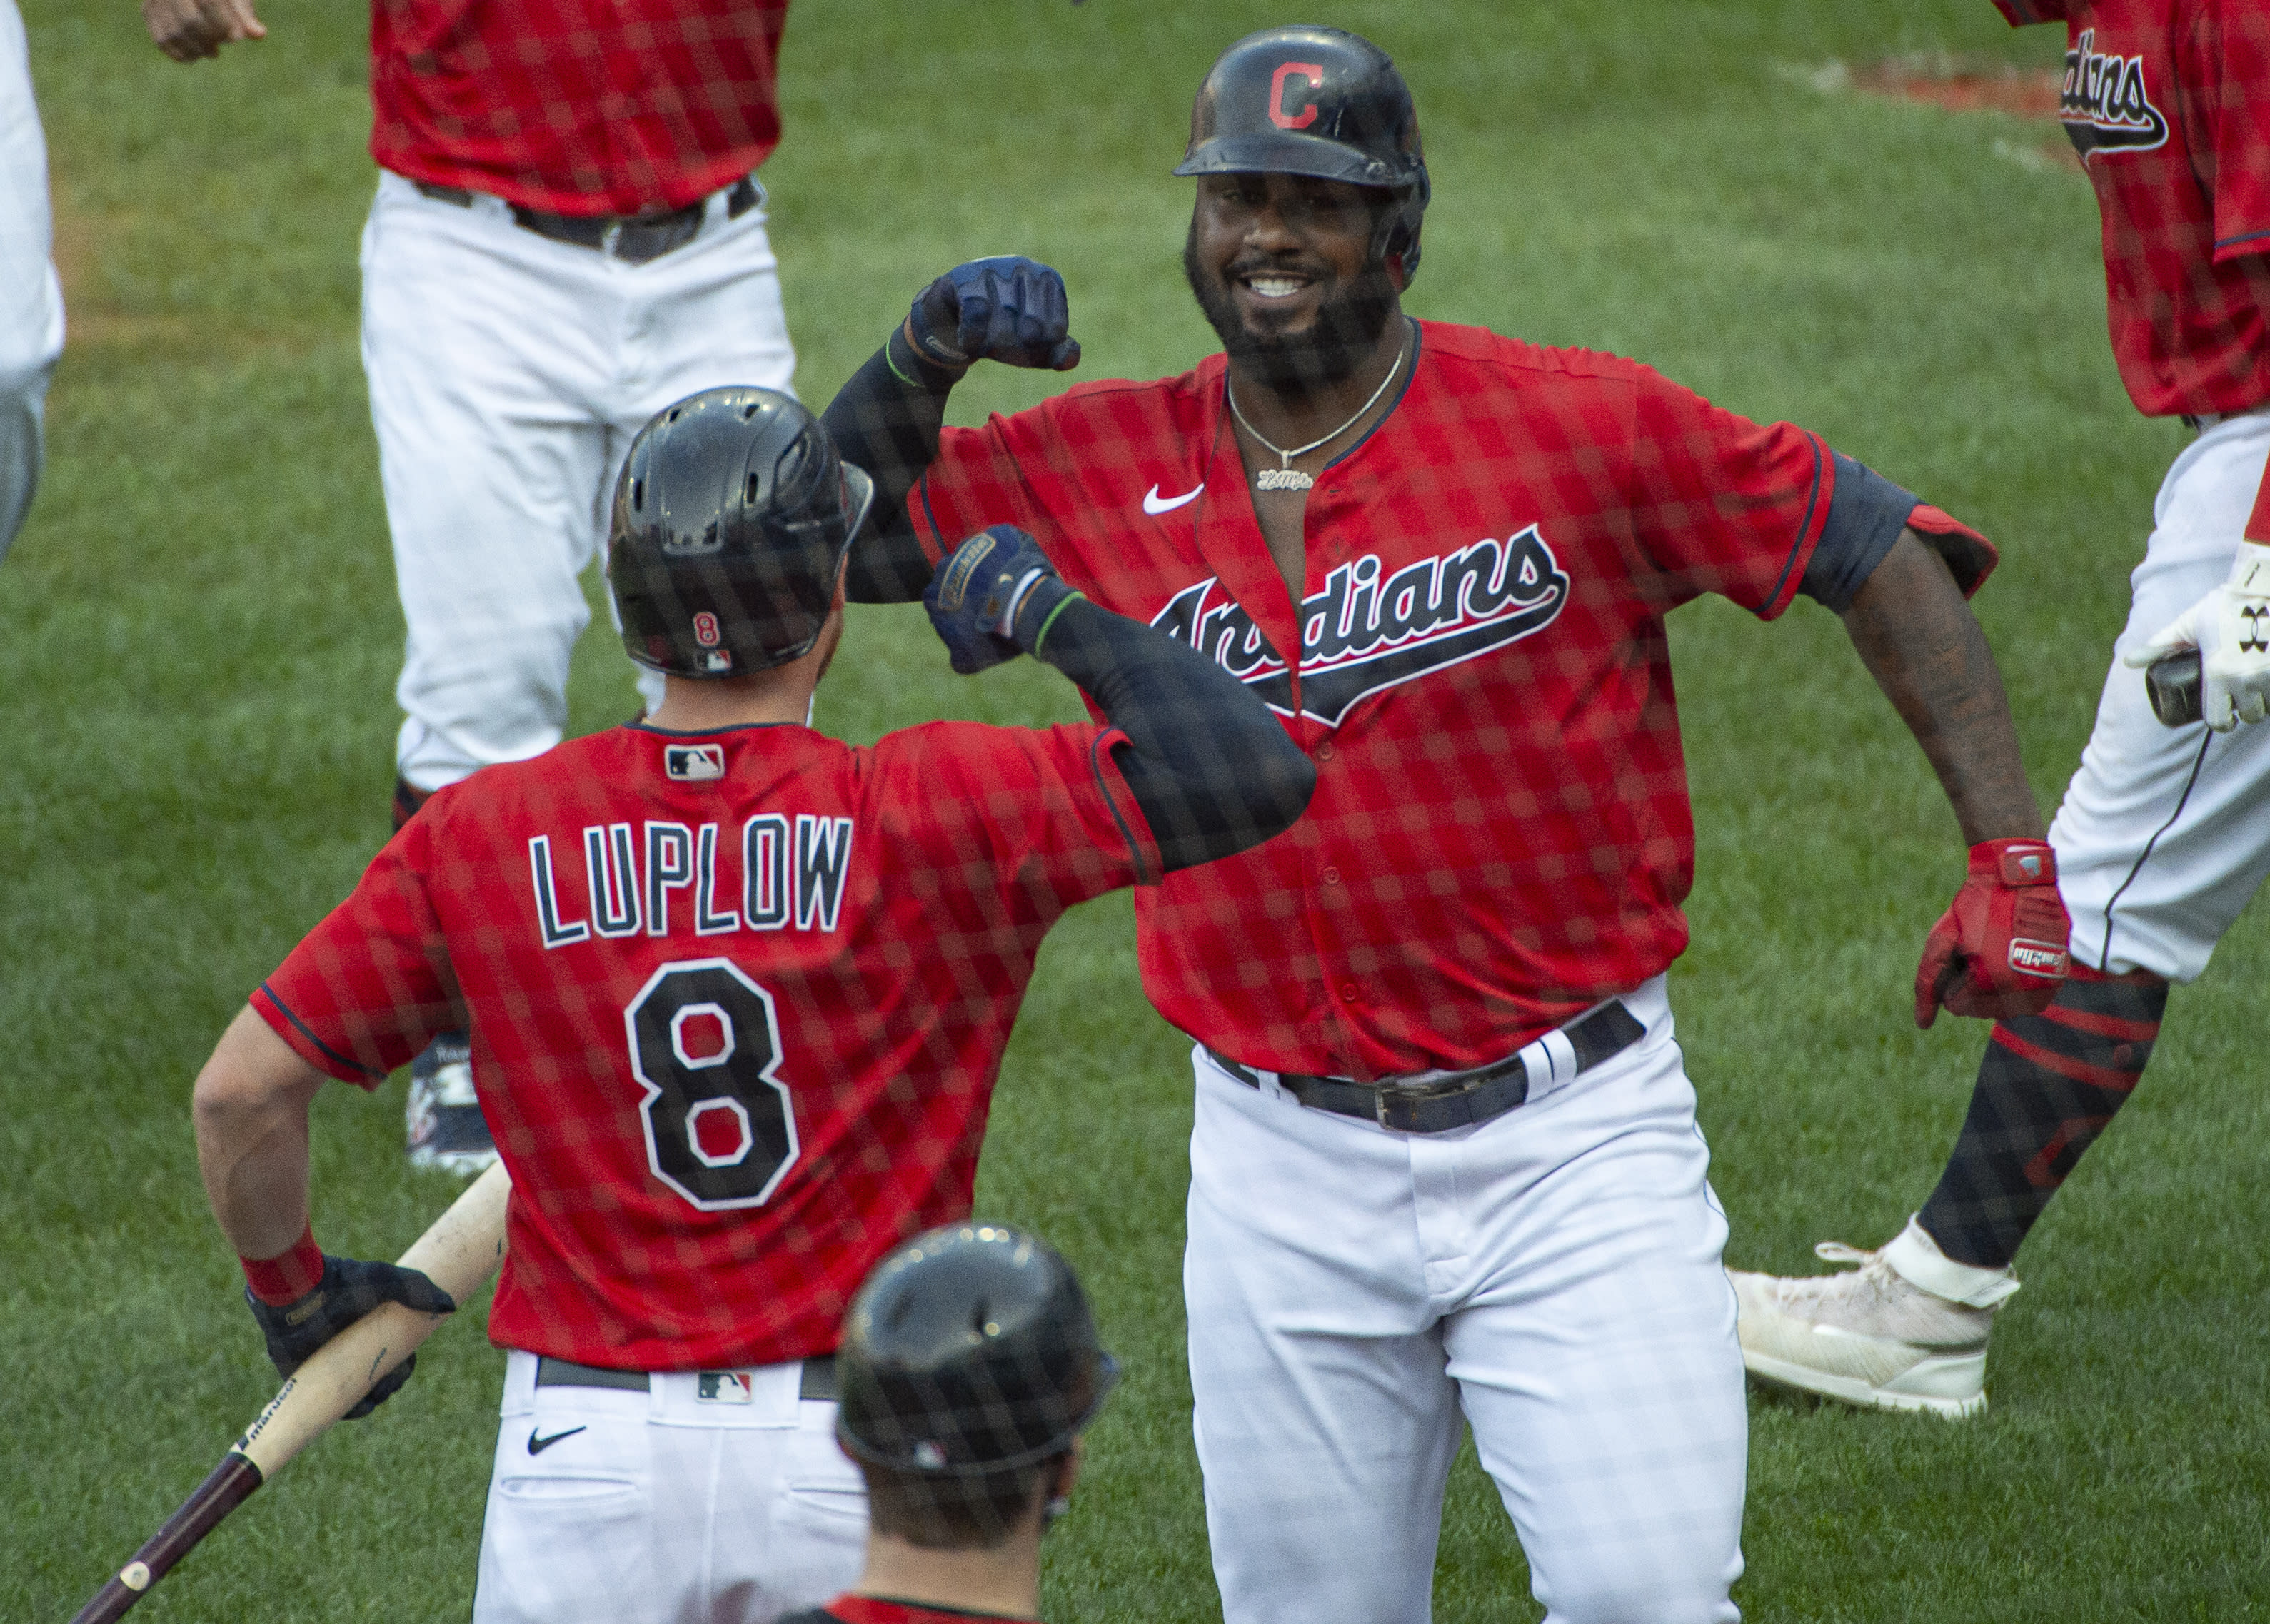 Cleveland Indians' Franmil Reyes, right, celebrates with Jordan Luplow (8) after hitting a three-run home run off Pittsburgh Pirates relief pitcher Geoff Hartlieb during the sixth inning of a baseball game in Cleveland, Sunday, Sept. 27, 2020. (AP Photo/Phil Long)